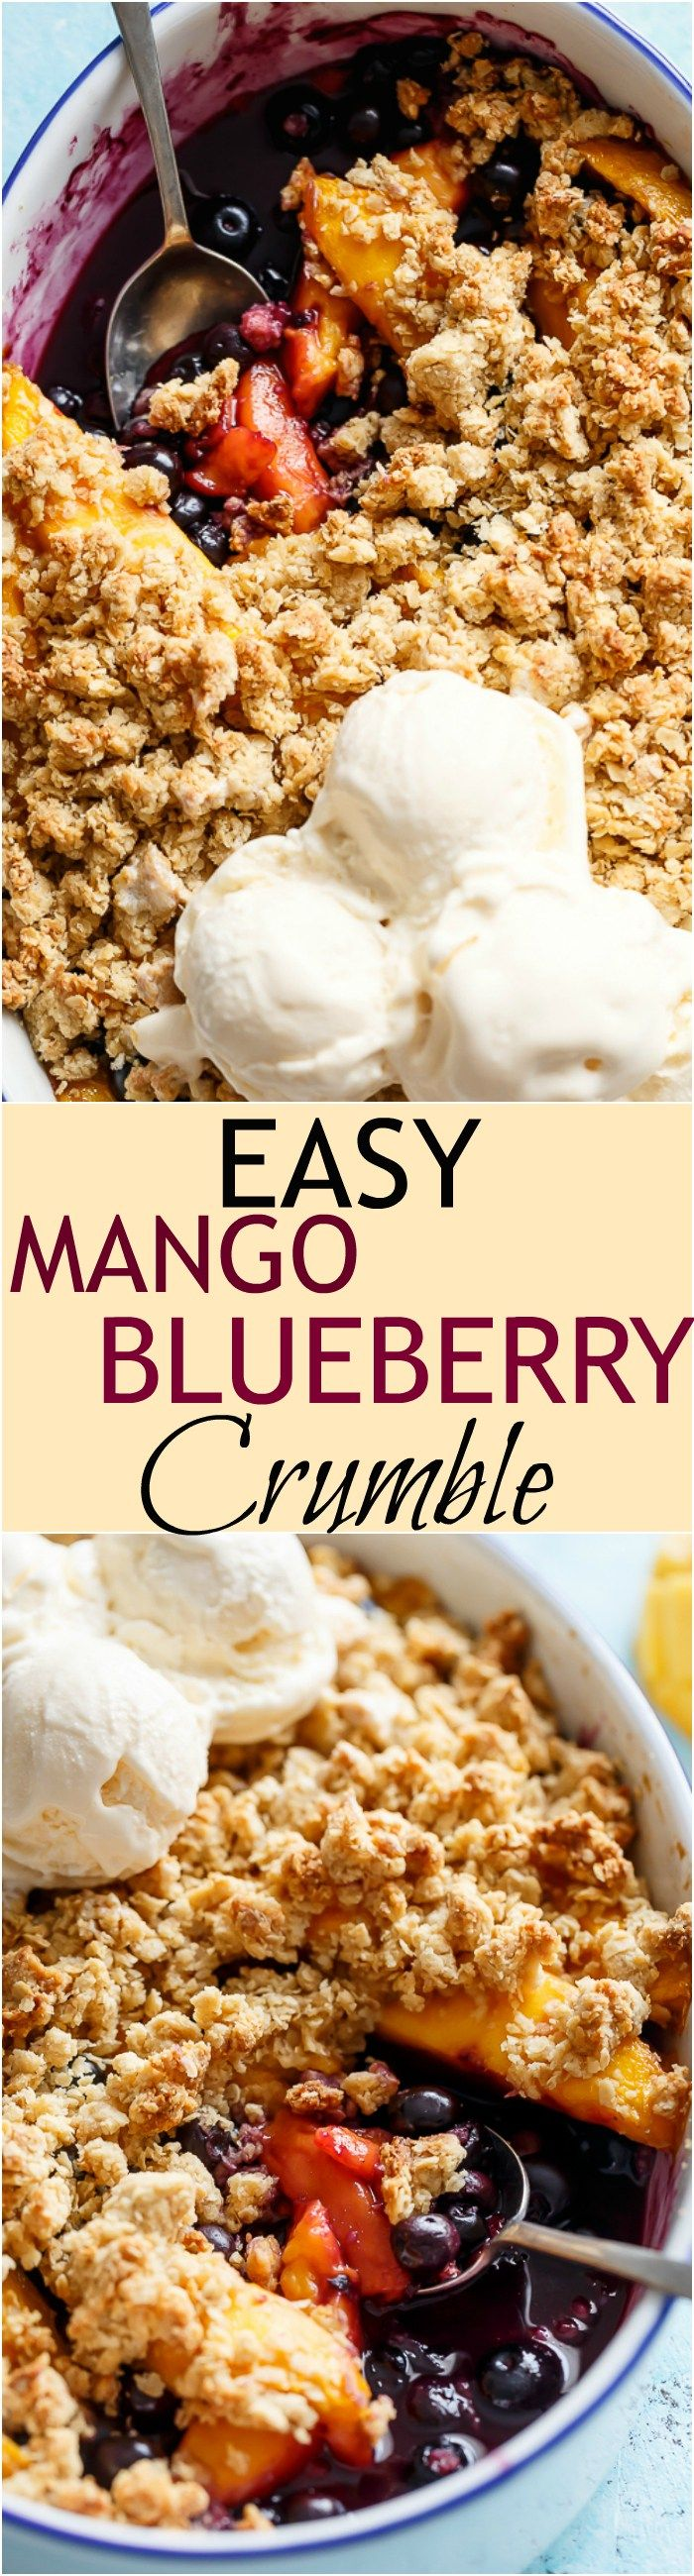 A classic and Easy Mango Blueberry Crumble with the crispy, buttery topping that's lighter in calories and BIG on flavour!   http://cafedelites.com